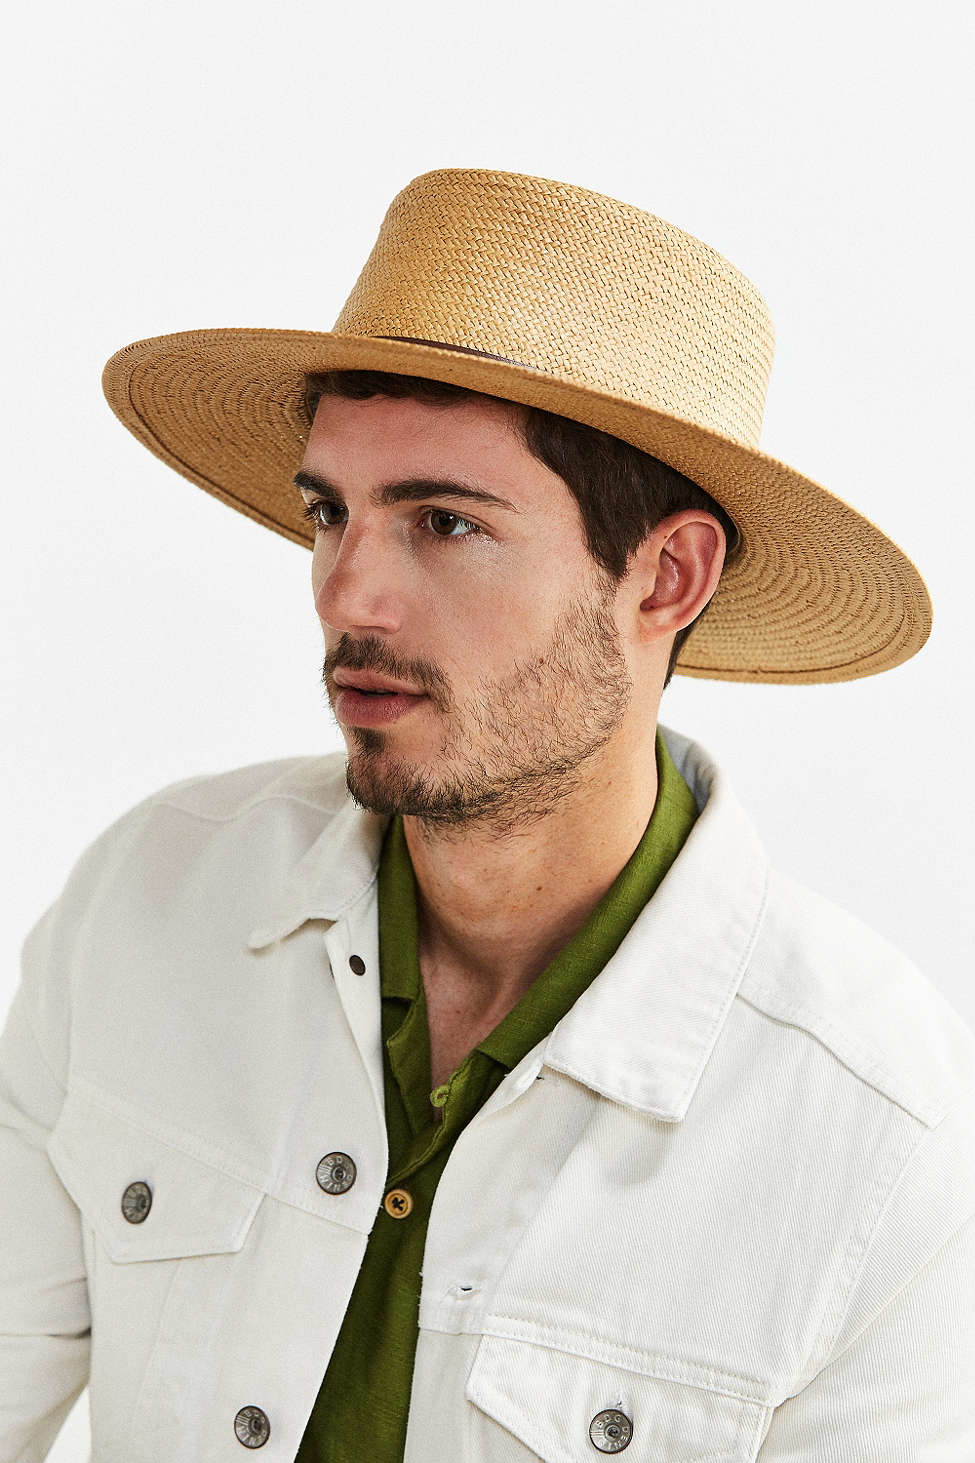 e6aa675427f1 Lyst - Urban Outfitters Wyeth Straw Boater Wide Brim Hat in Natural ...